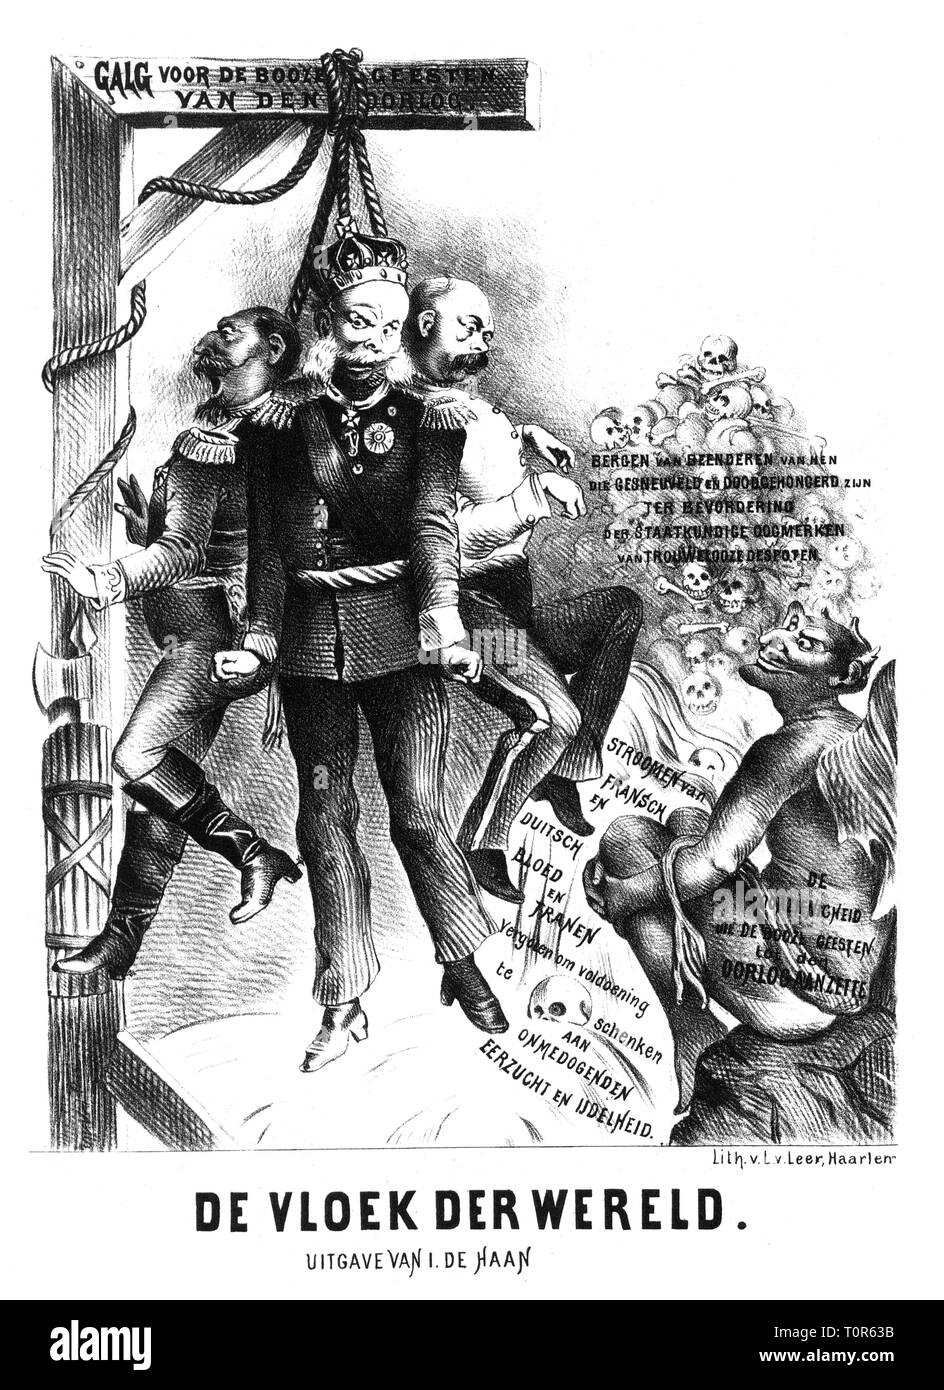 Franco-Prussian War 1870 - 1871, caricature, Emperor Napoleon III, Emperor William I and Otto von Bismarck hanging at gallows for the evil spirits of war, 'The Curse the World', lithograph by Leer, Haarlem, 1870 - 1871, satire, caricature, caricatures, cartoon, cartoons, Dutch press, Netherlands, king of Prussia, Prime Minister, France, devil, devils, skull, skulls, dead, German - French, people, men, man, male, manly, 19th century, historic, historical, Additional-Rights-Clearance-Info-Not-Available - Stock Image